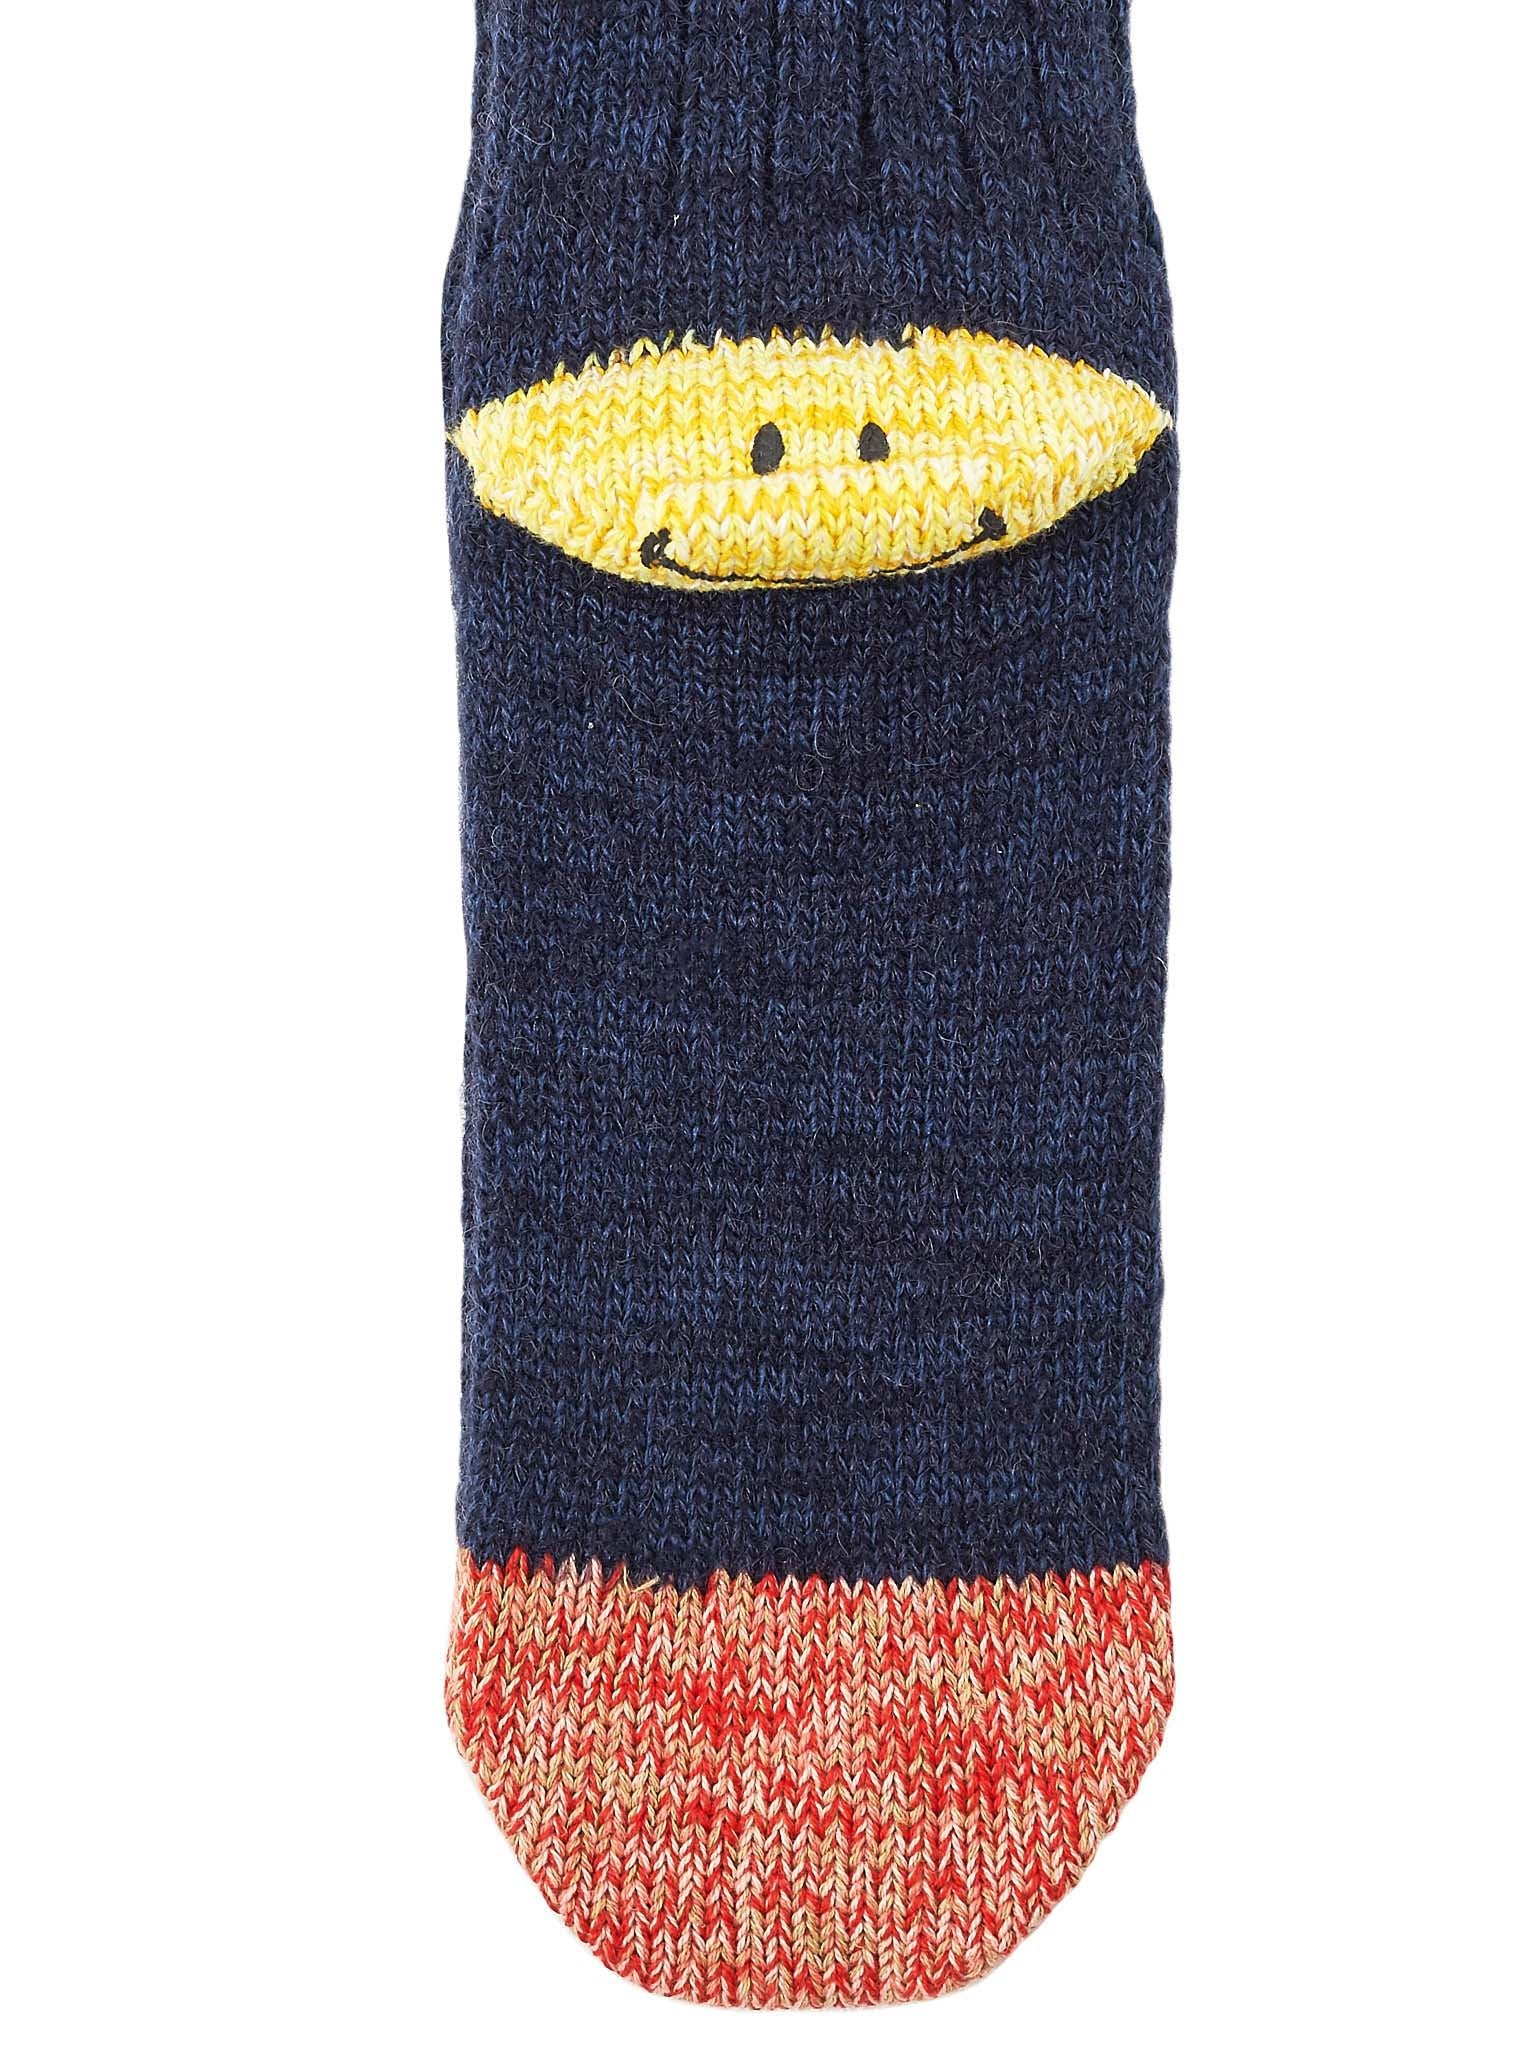 Smile-Heel Stripe Socks (EK-563-NAVY)